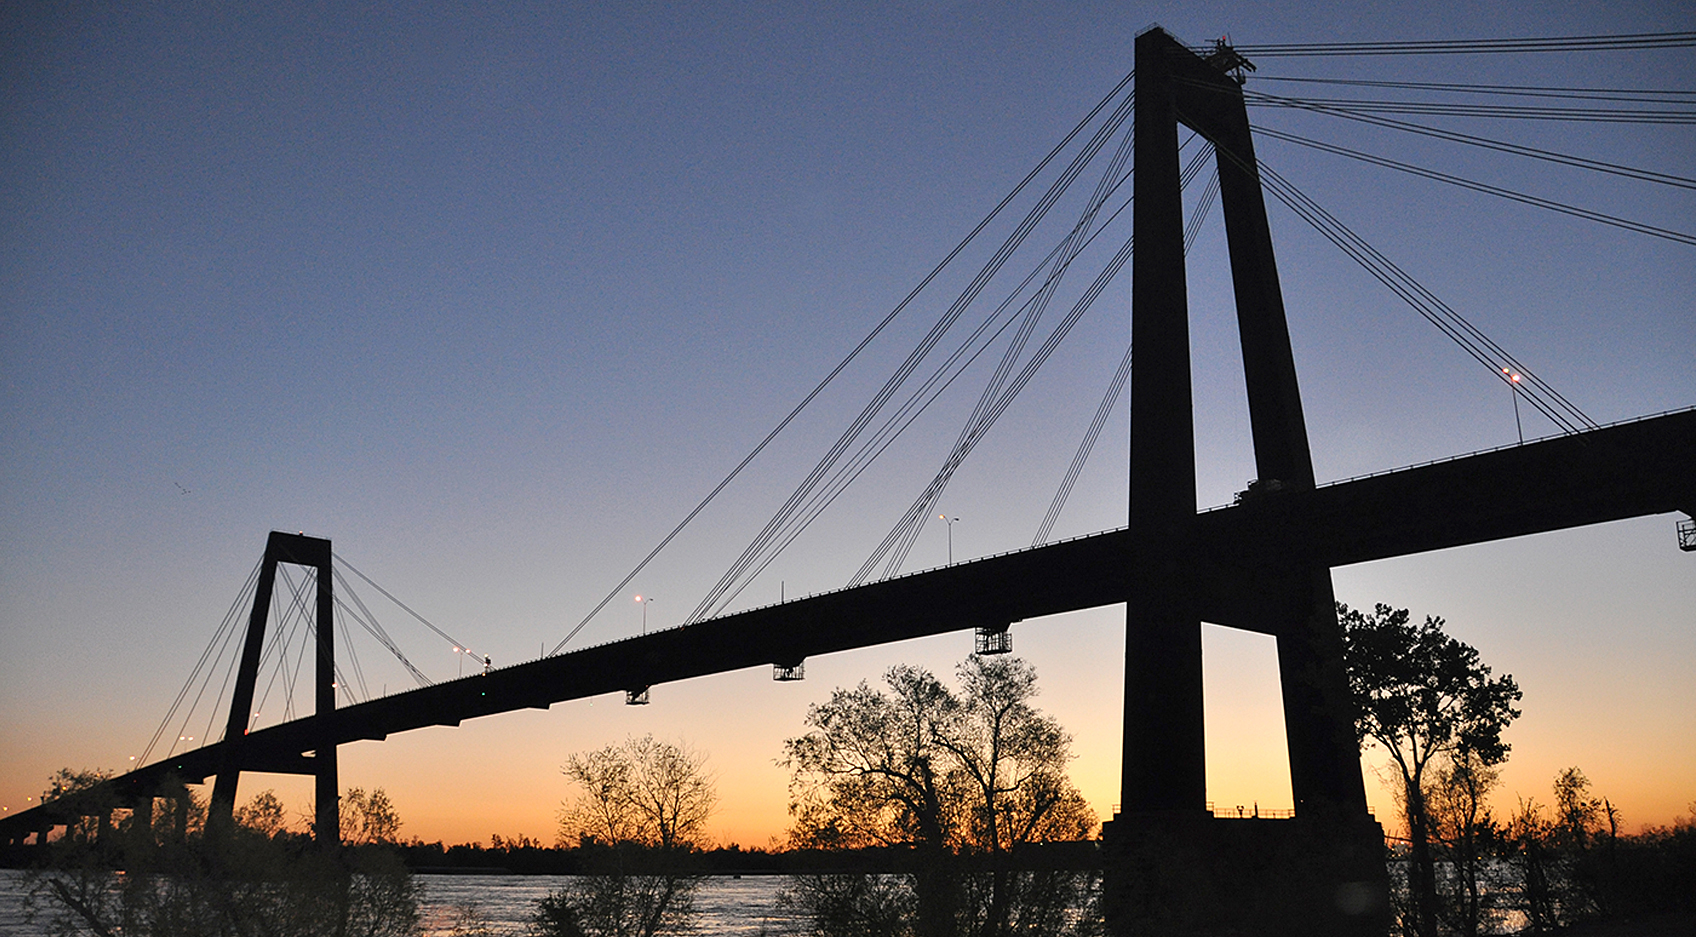 HALE BOGGS MEMORIAL BRIDGE